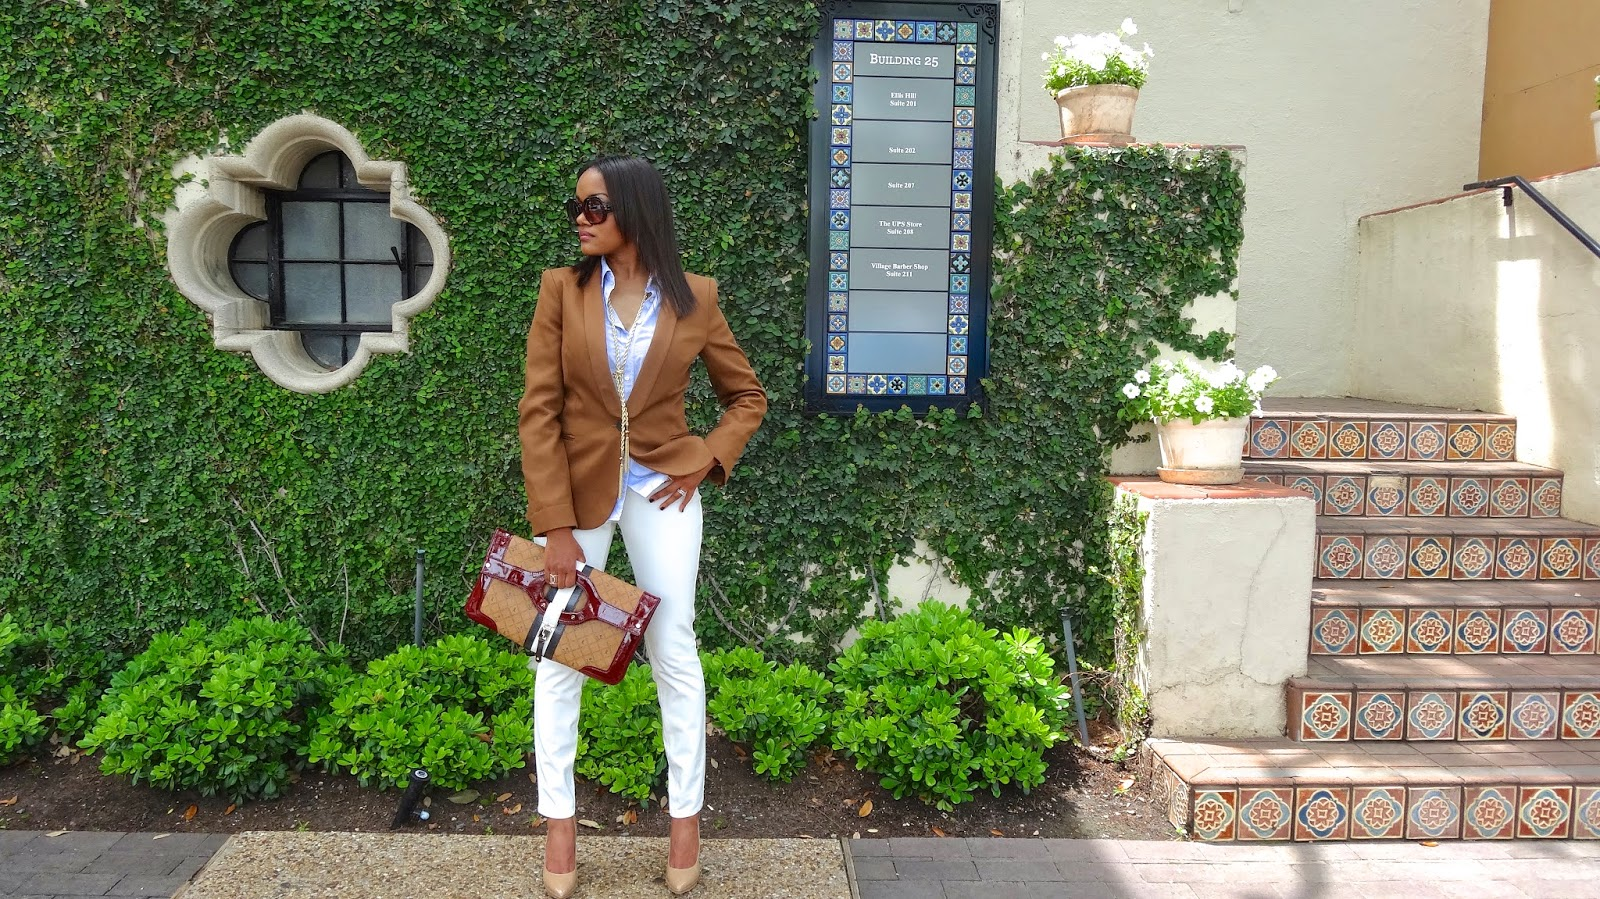 DALLAS FASHION BLOGGER, FASHION BLOGGER, DETROIT FASHION BLOGGER, DALLAS, NINE WEST LOVE FURY, H&M, WHITE JEANS, SPRING TREND, L.A.M.B., TASSEL NECKLACE, HIGHLAND PARK VILLAGE, STATEMENT BAG, ZARA BLAZER, ZARA, NUDE PUMPS,